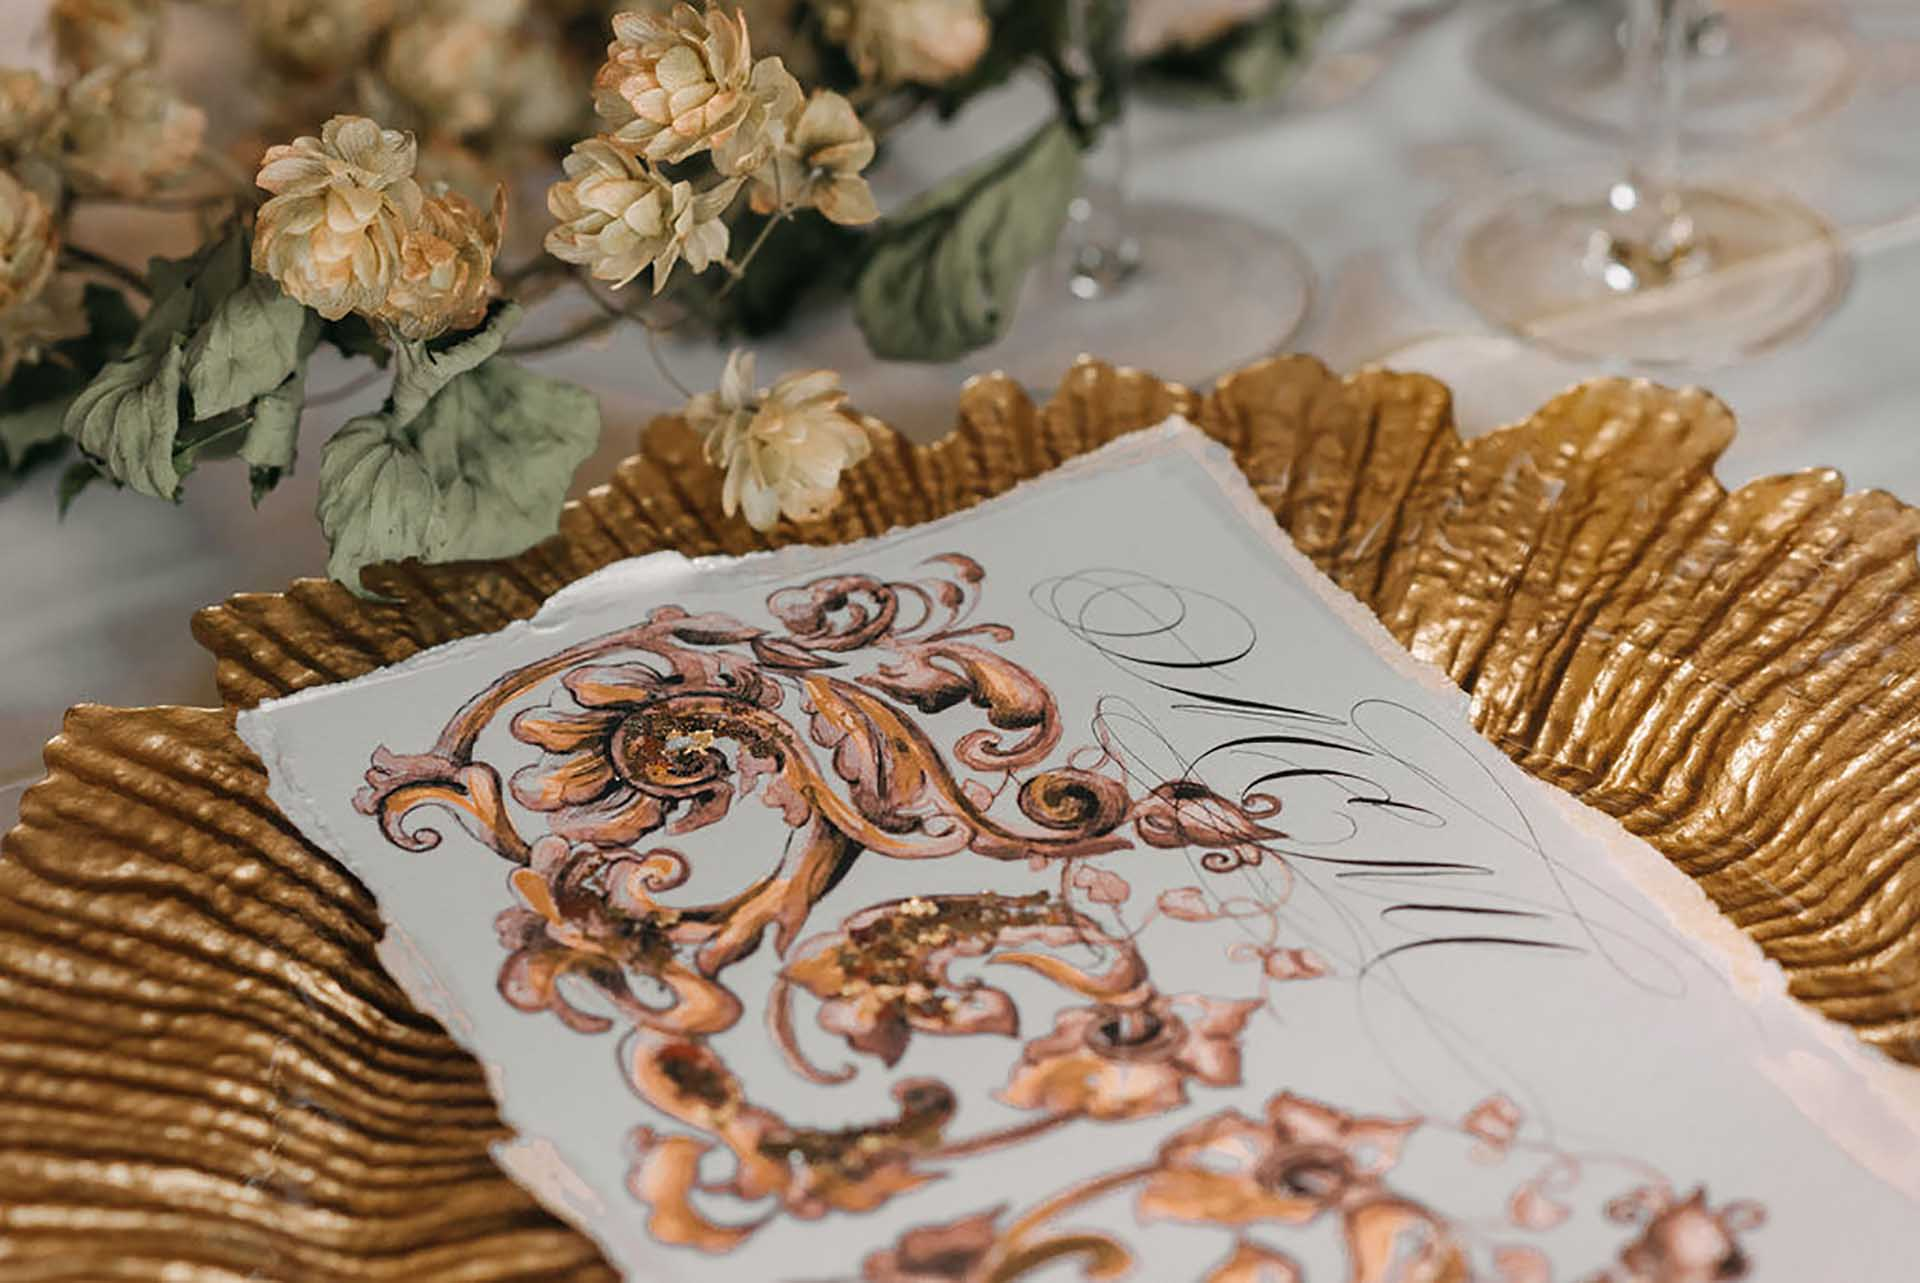 Luxury custom designed copper and gold baroque style menu design for a classical wedding